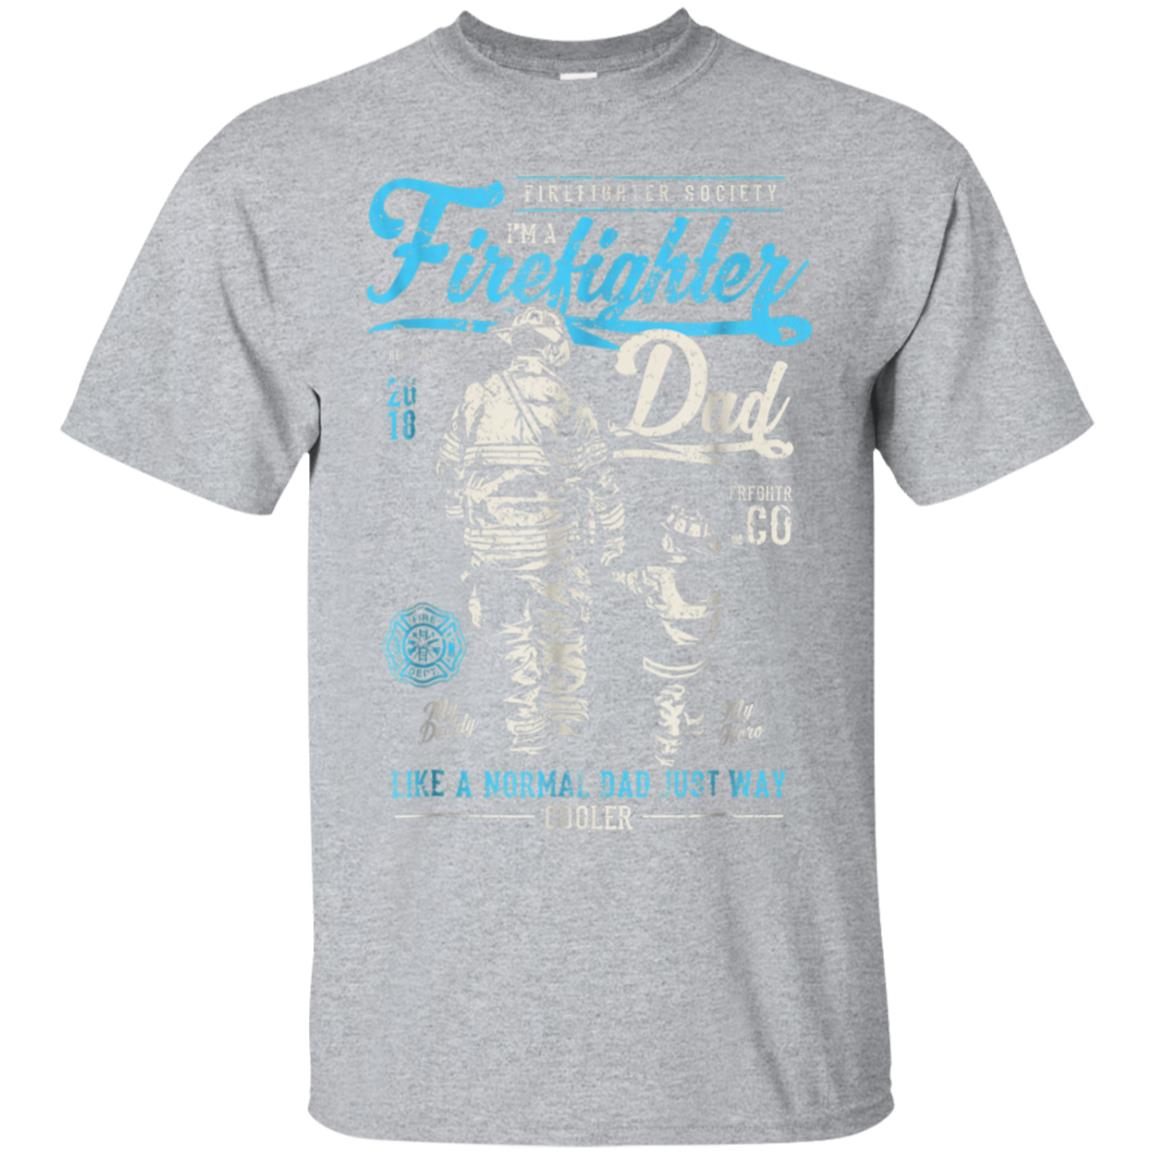 Firefighter Father's Day T-Shirt Retro Dad Xmas Gifts 99promocode